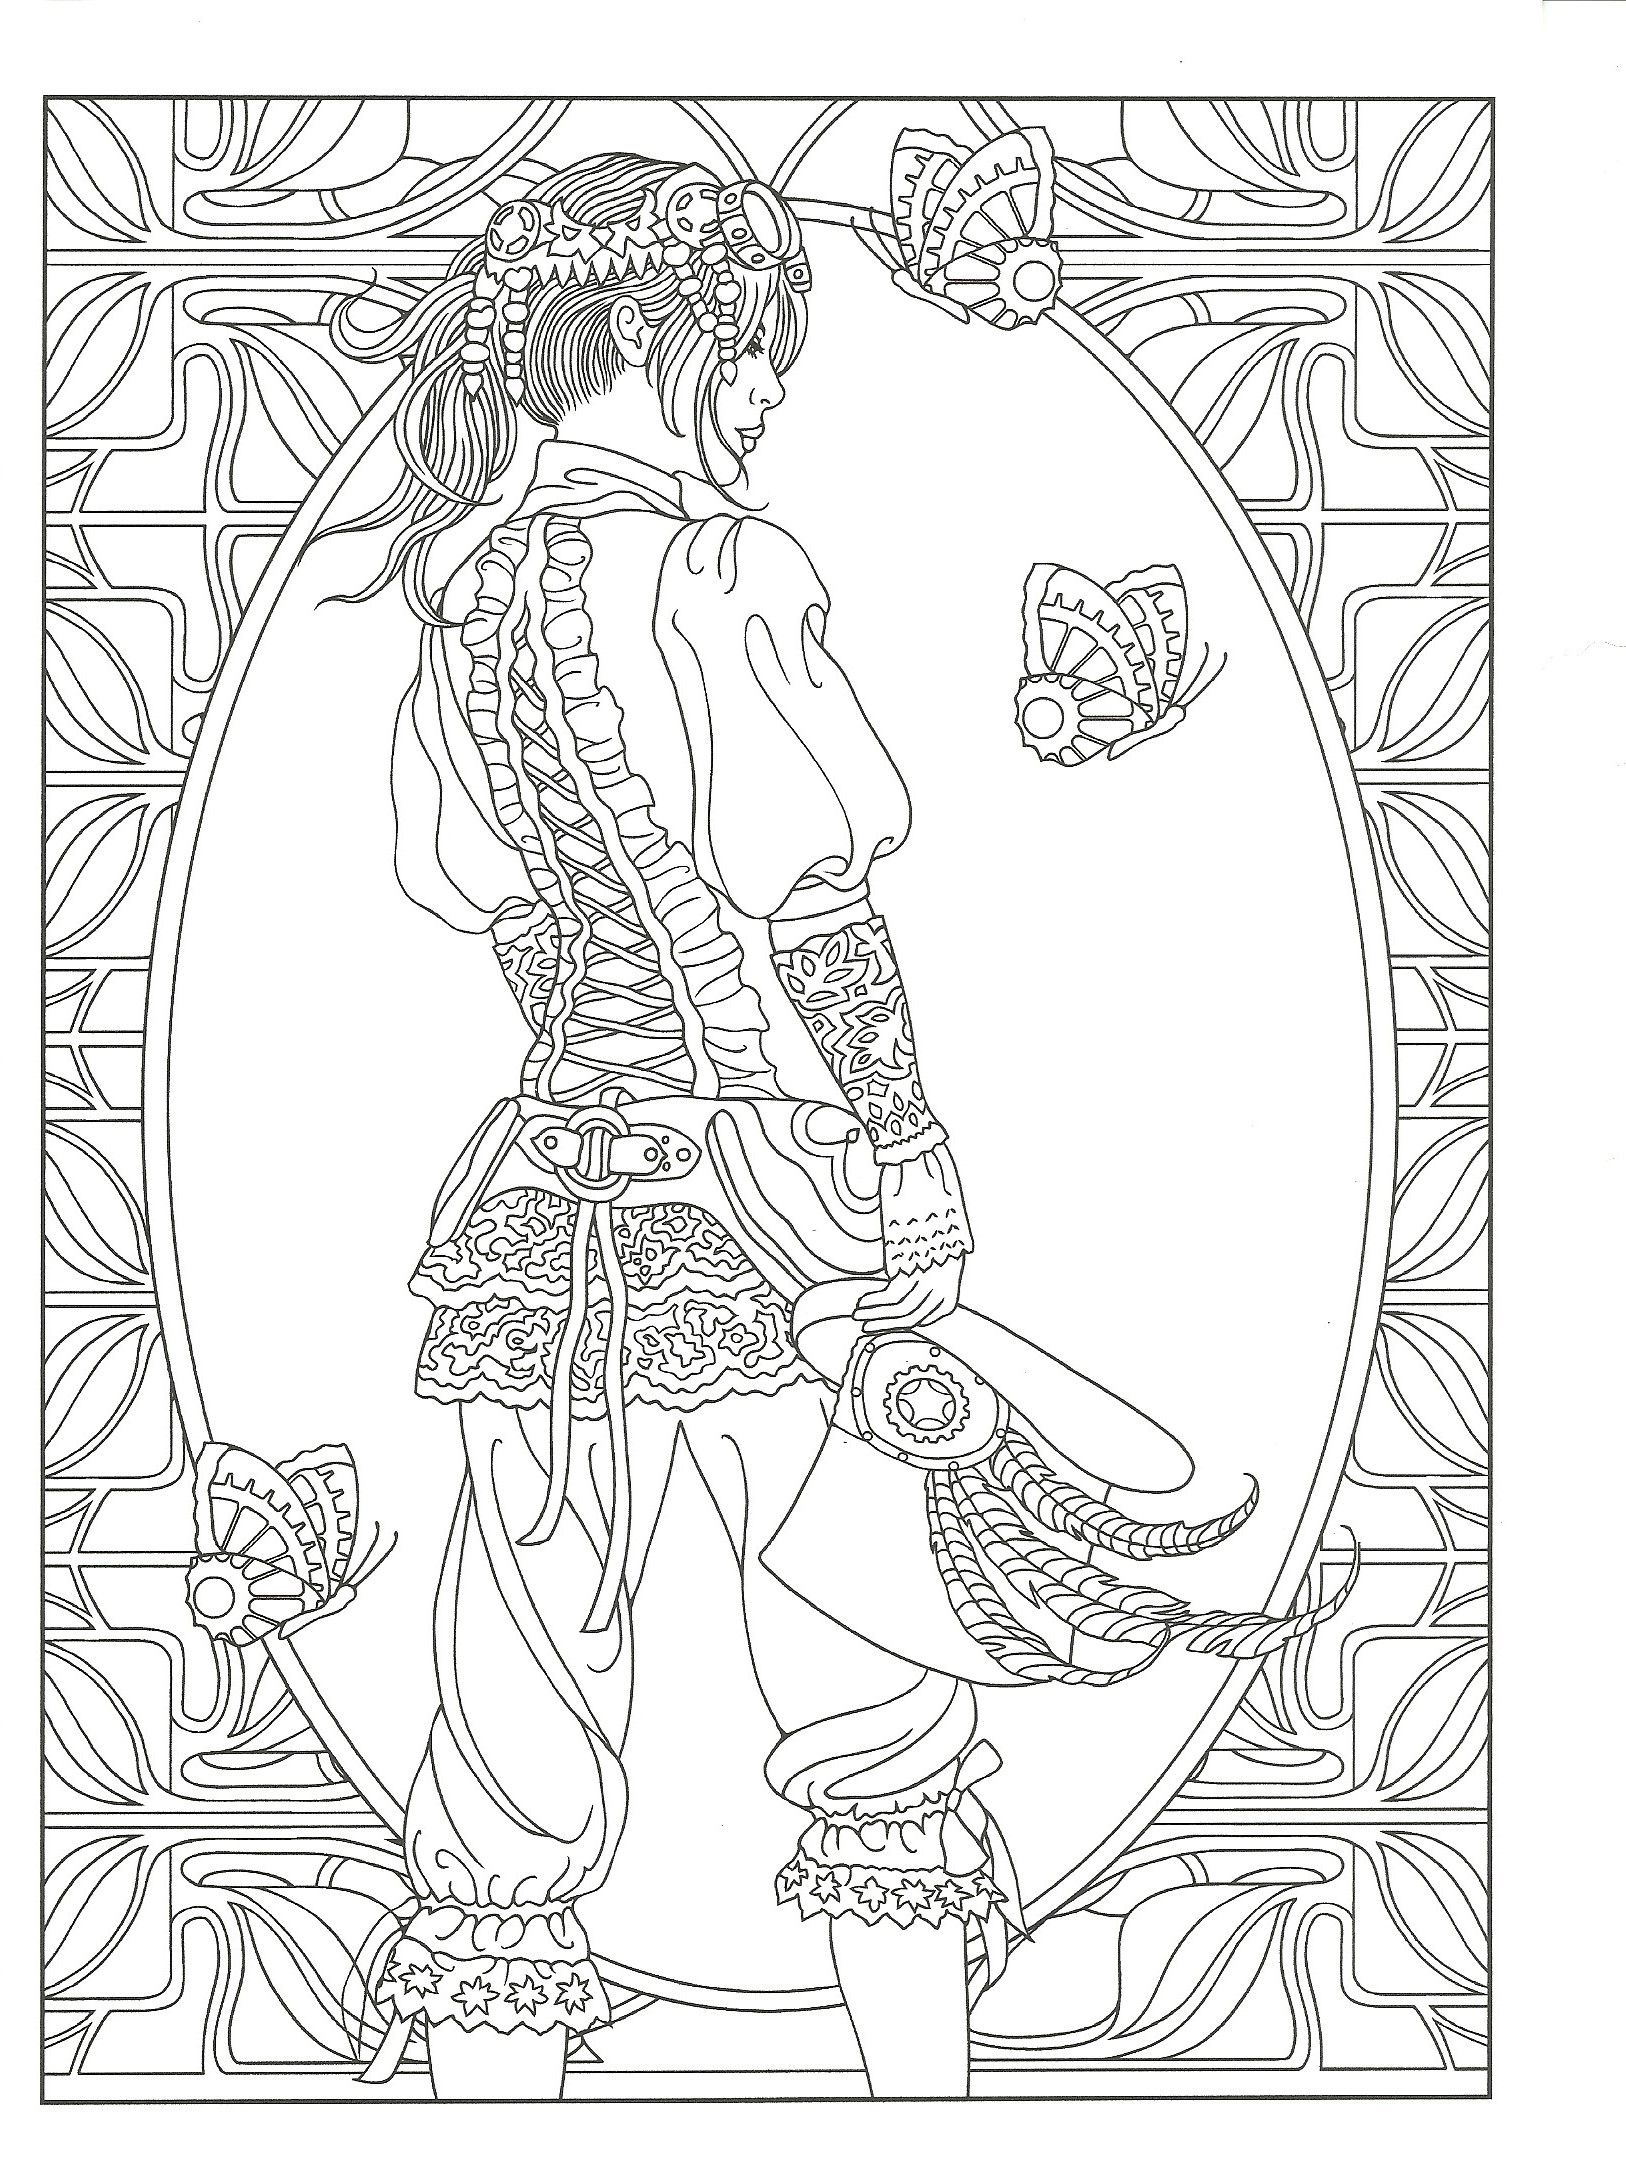 steampunk girl coloring pages - photo#15